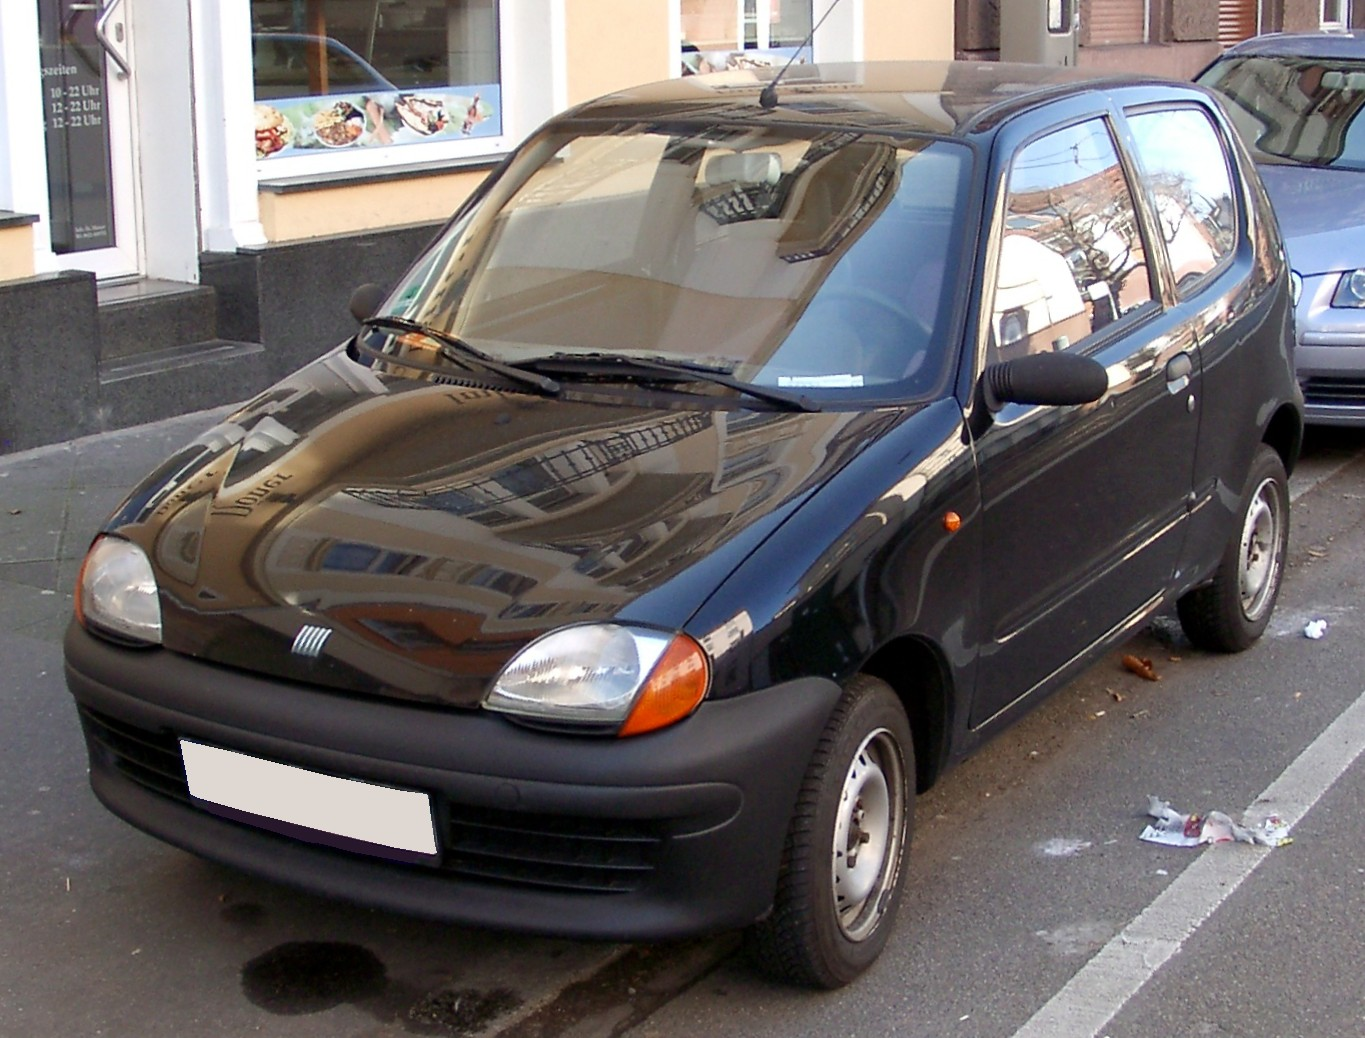 https://upload.wikimedia.org/wikipedia/commons/2/20/Fiat_Seicento_black_front_20080224.jpg